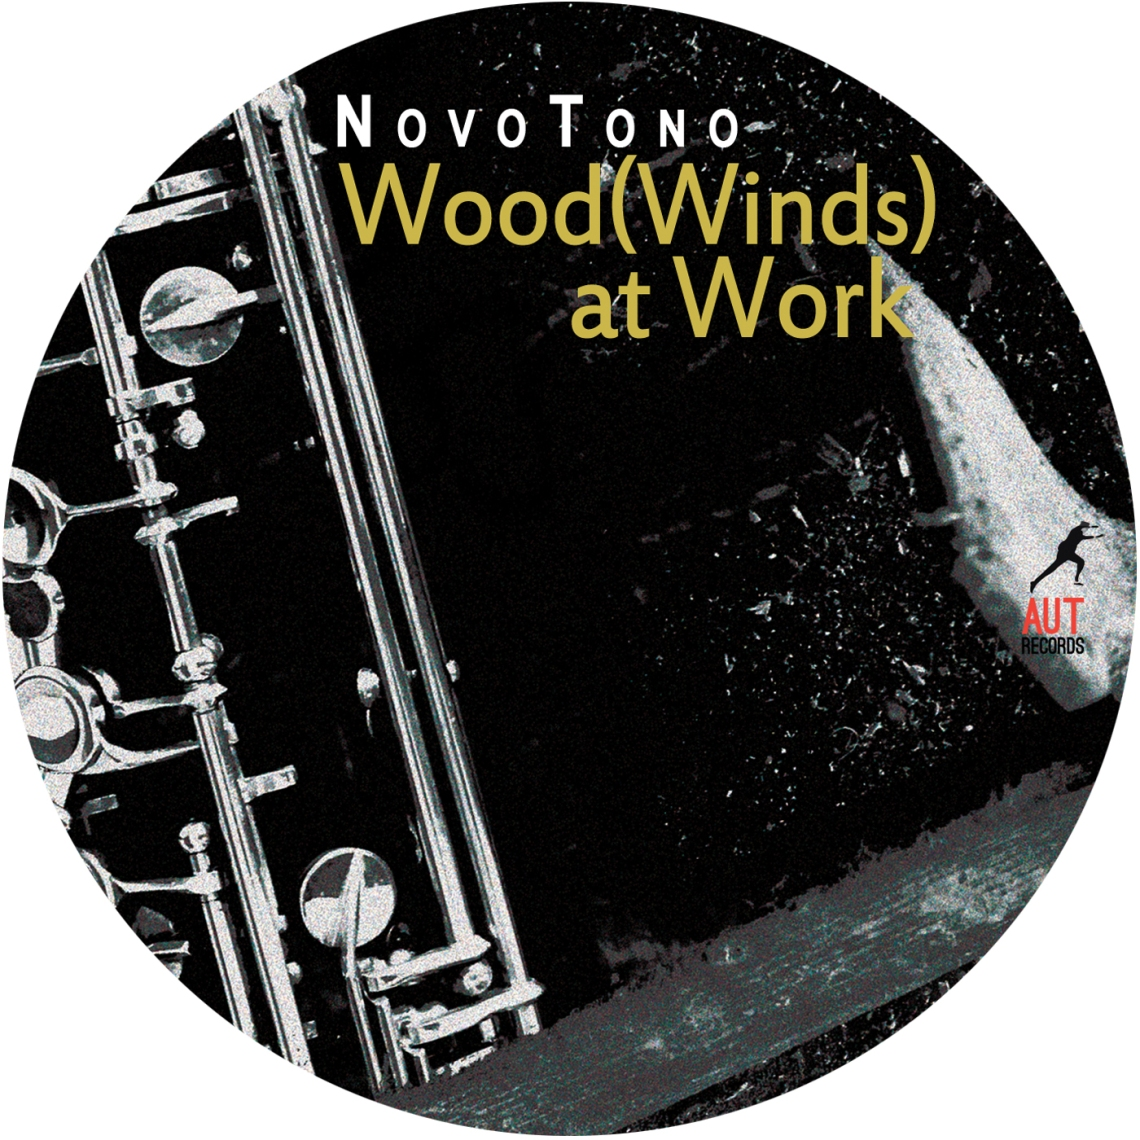 WoodWinds-at-Work-label